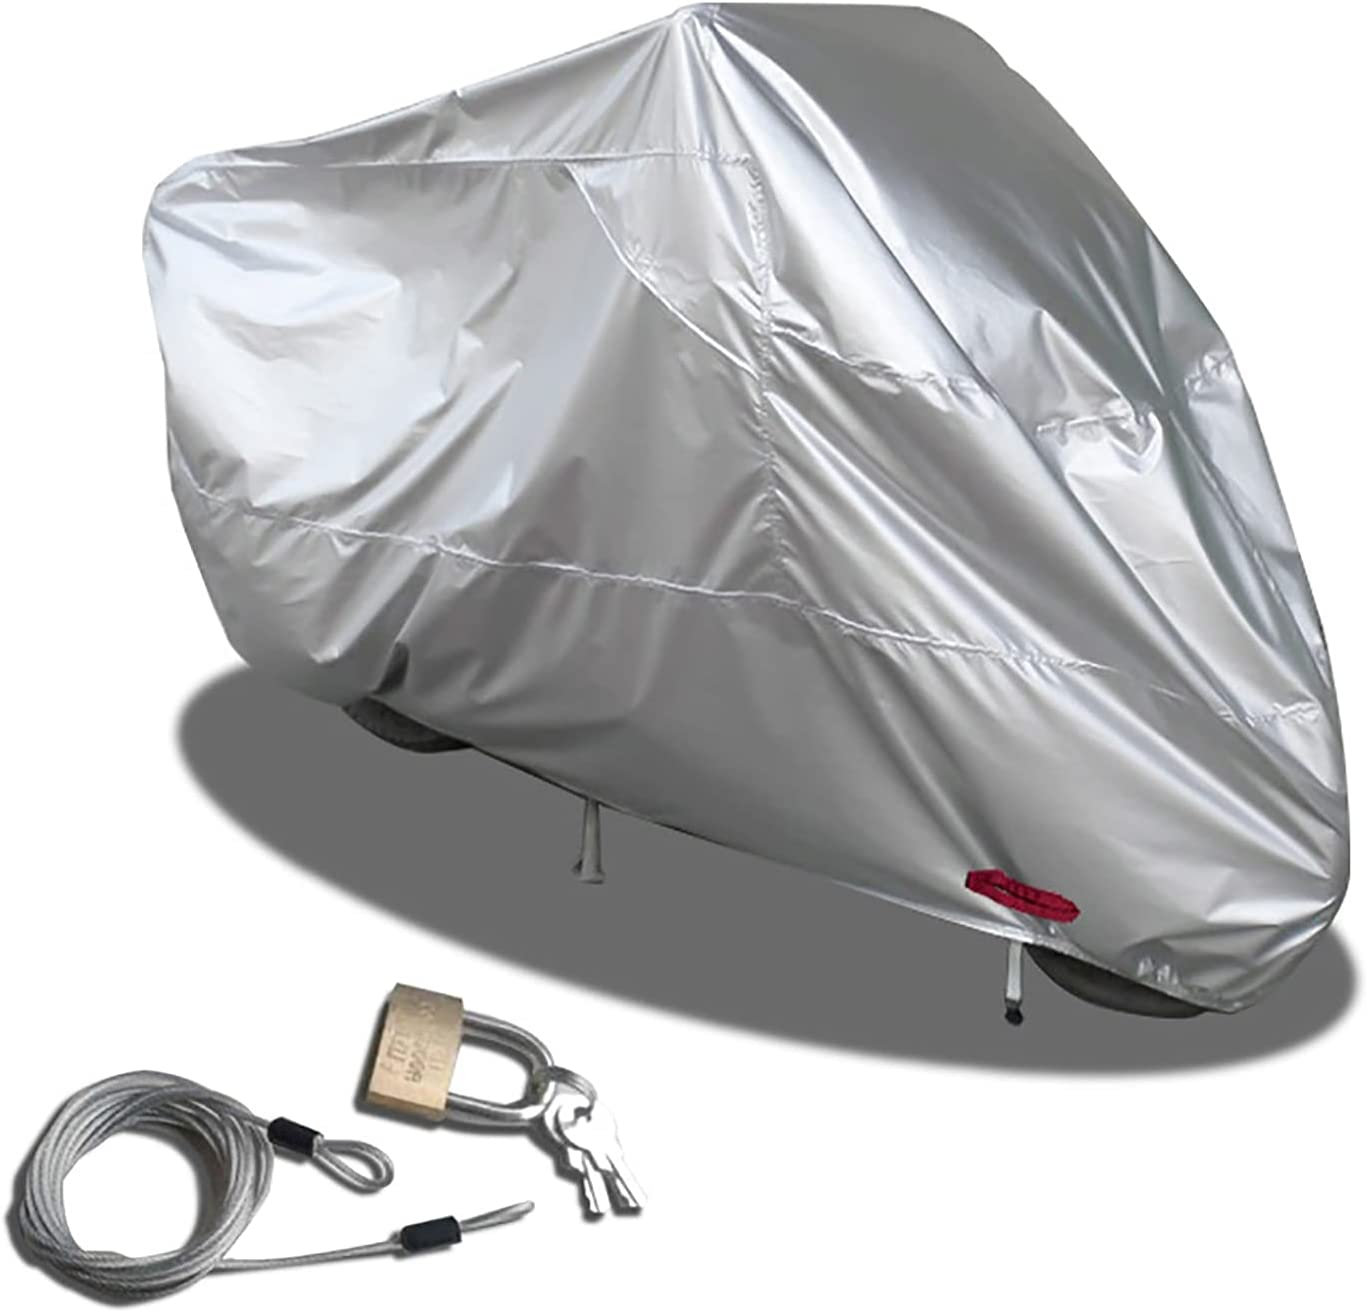 Quality inspection Guoguocy Motorcycle Cover Apri Compatible with Animer and price revision